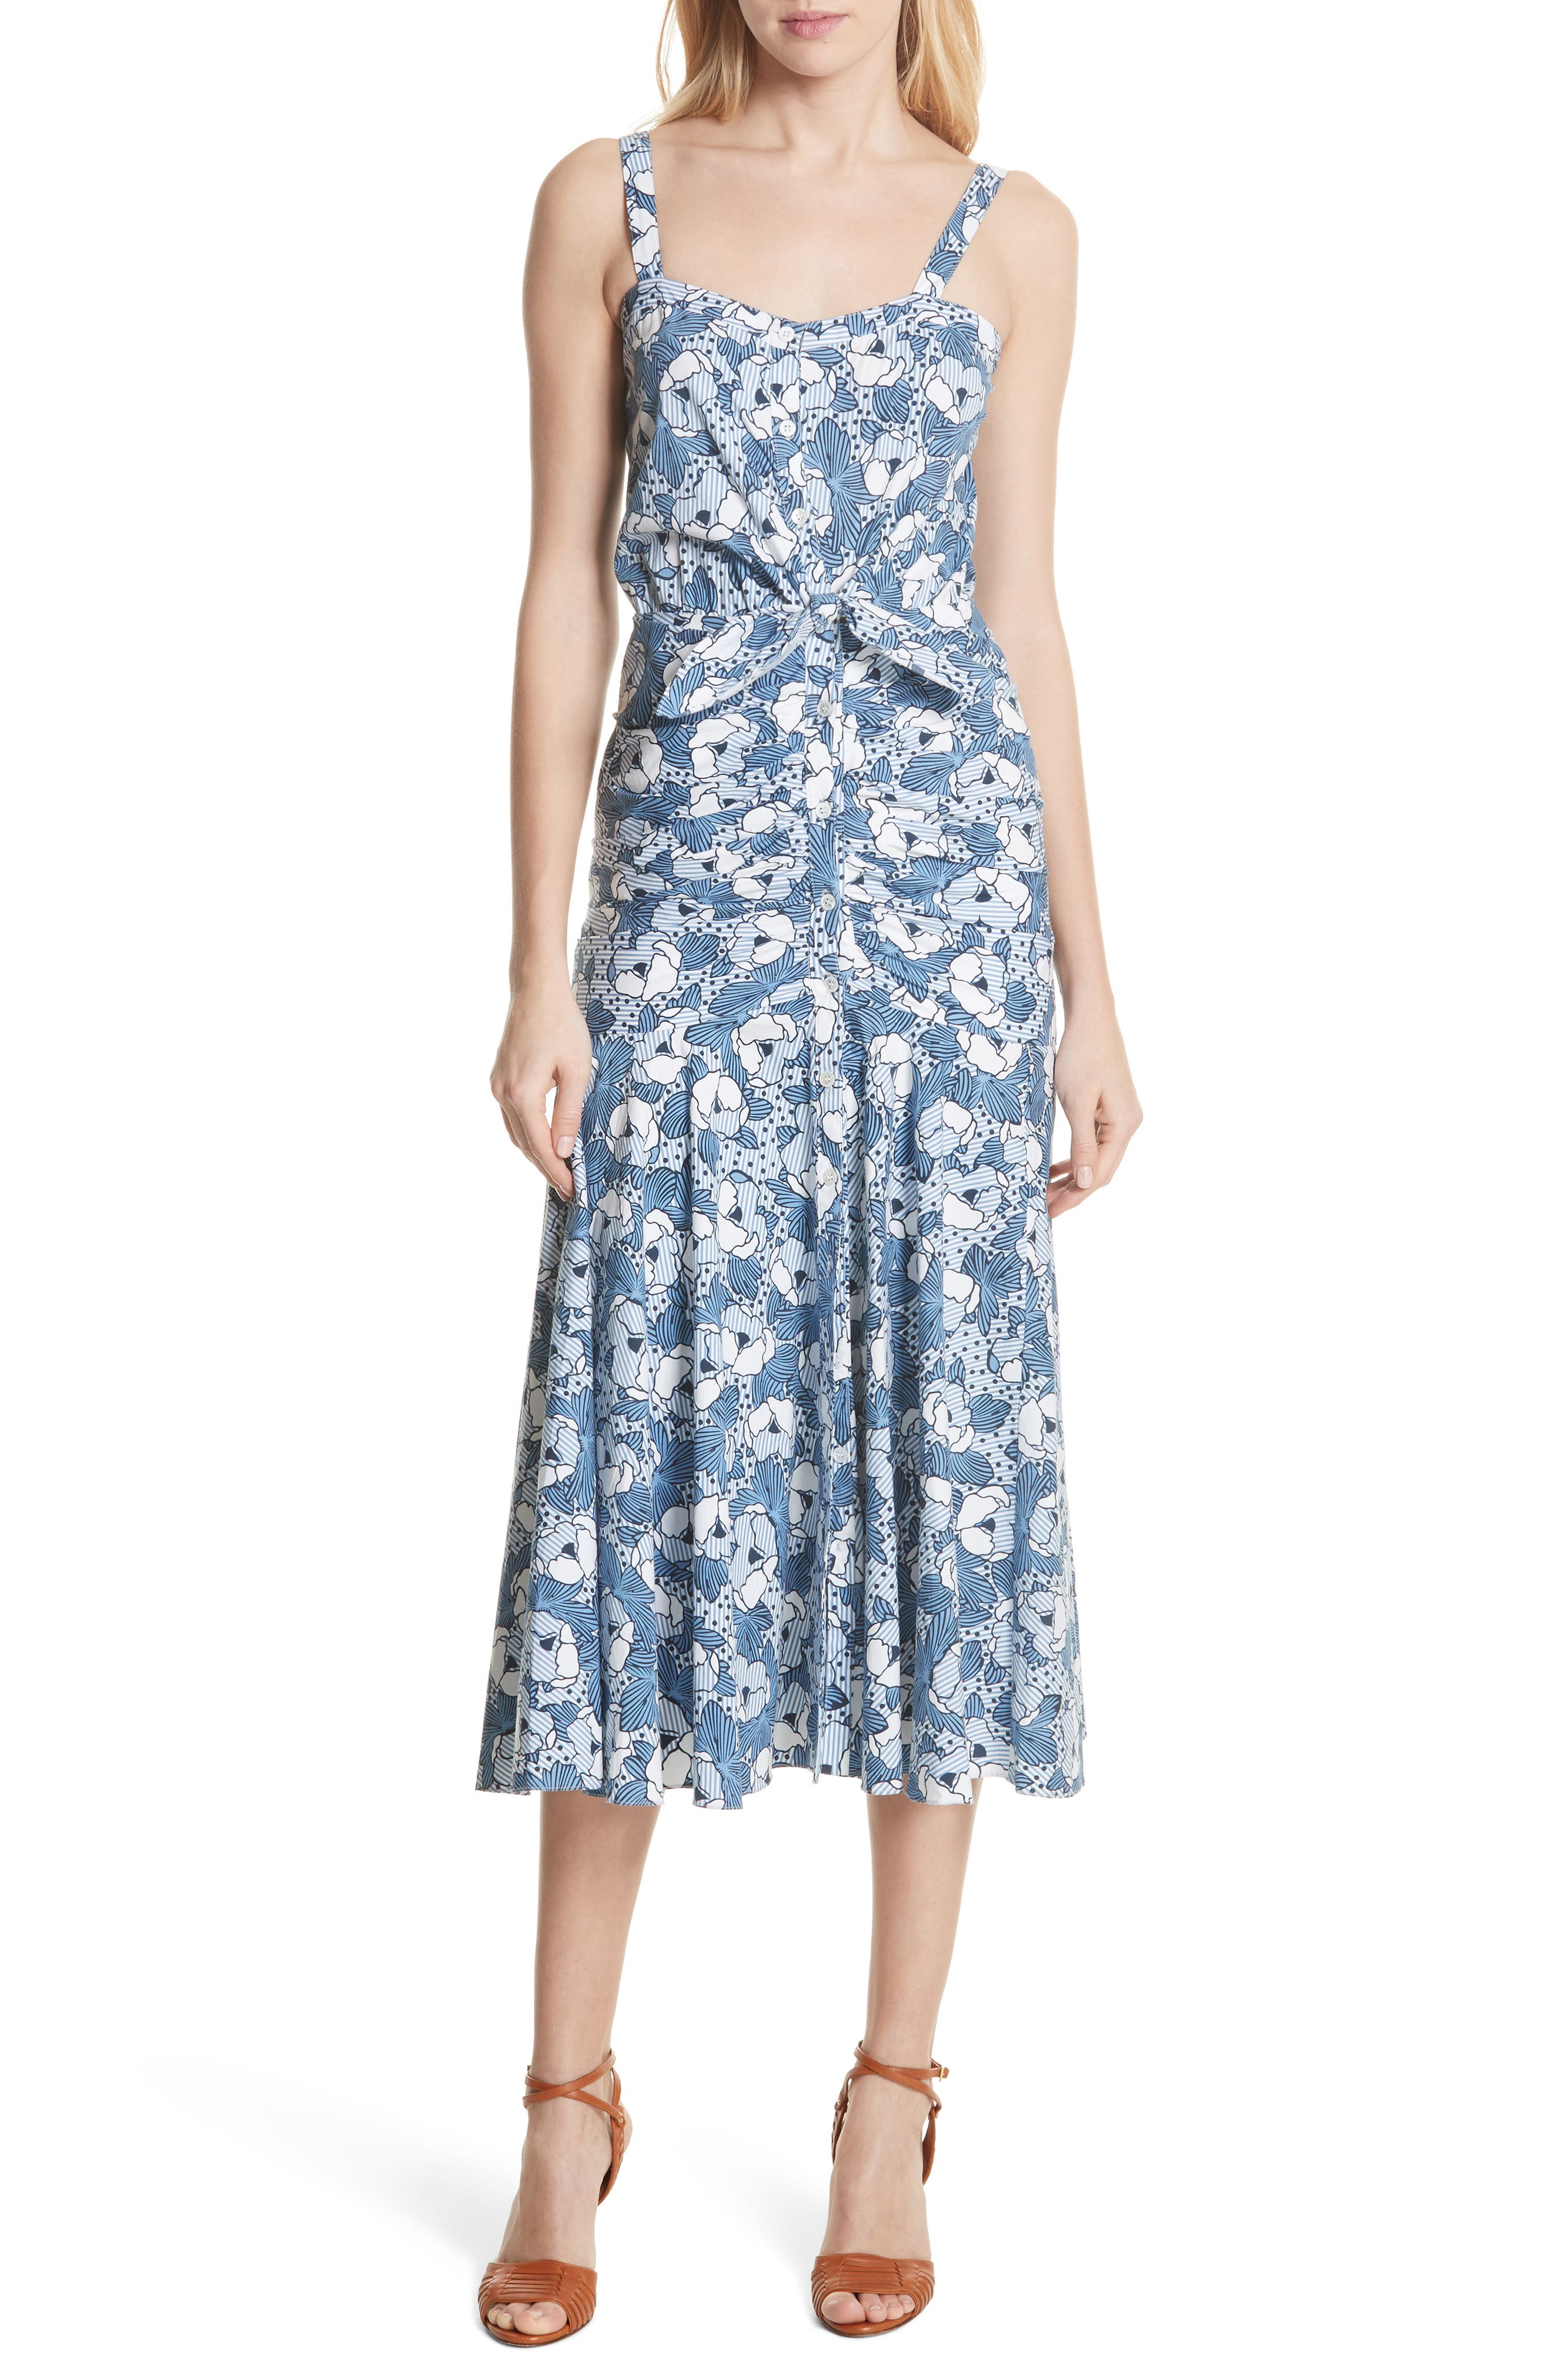 Marena Ruched Waist Floral Midi Dress,                             Main thumbnail 1, color,                             Blue/ White